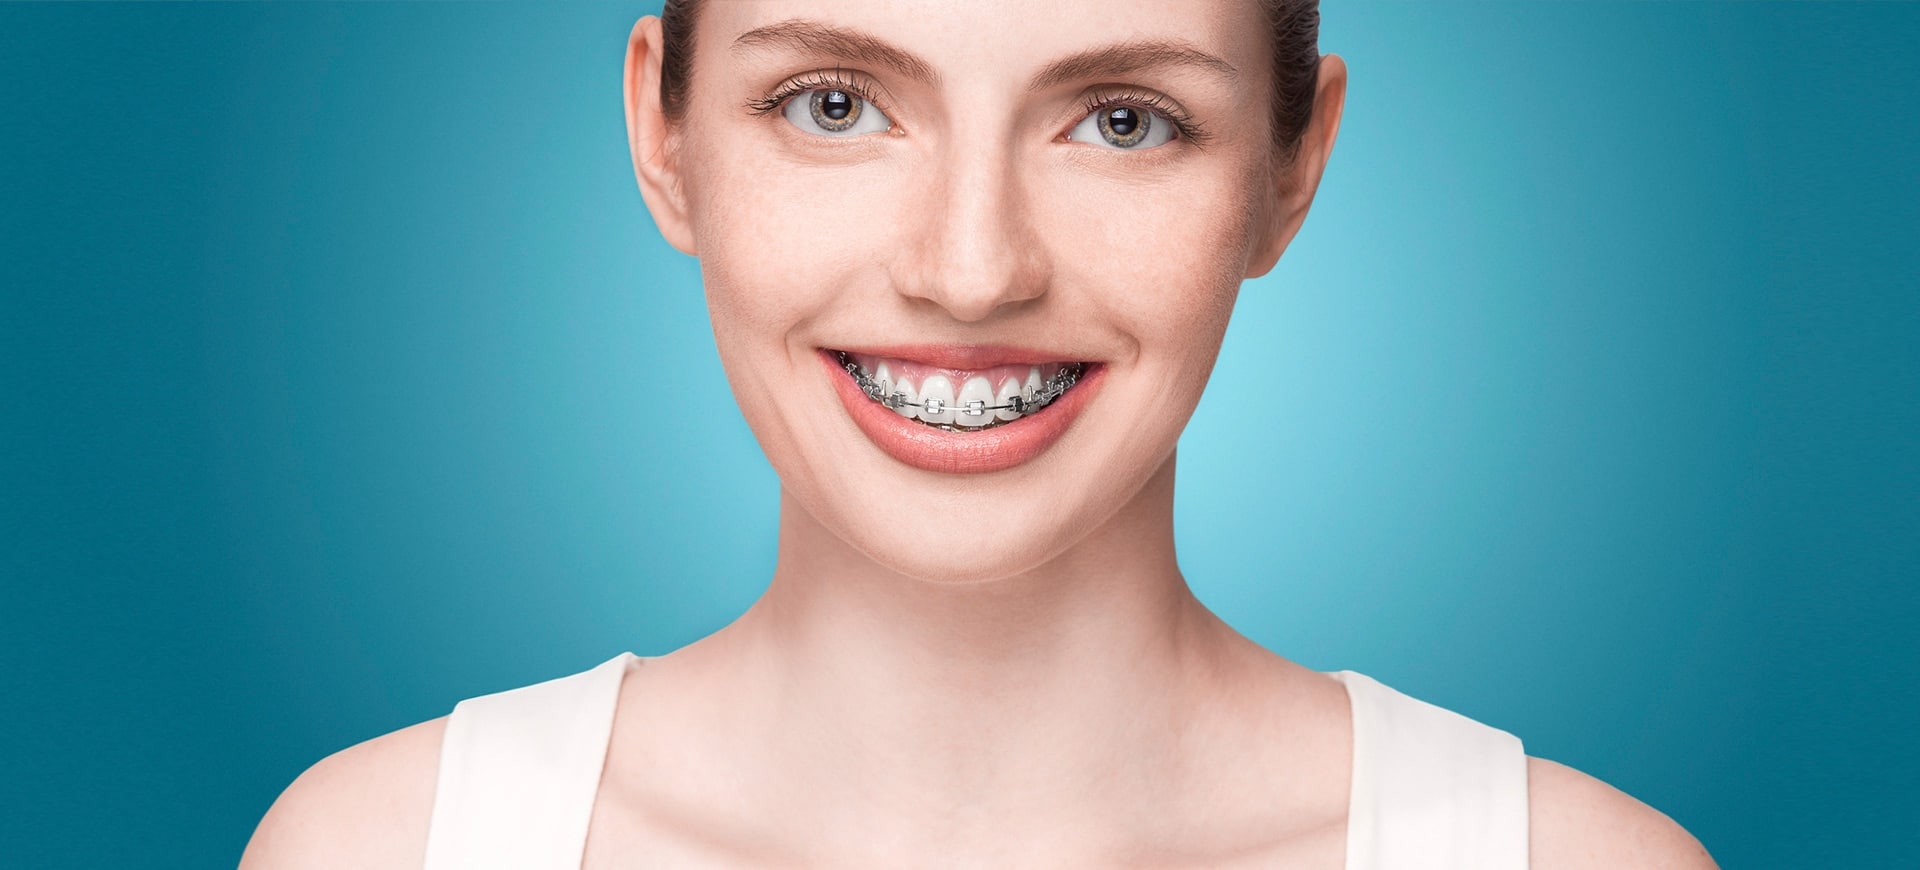 Orthodontics-and-cost-–-what-you're-actually-paying-for.jpg